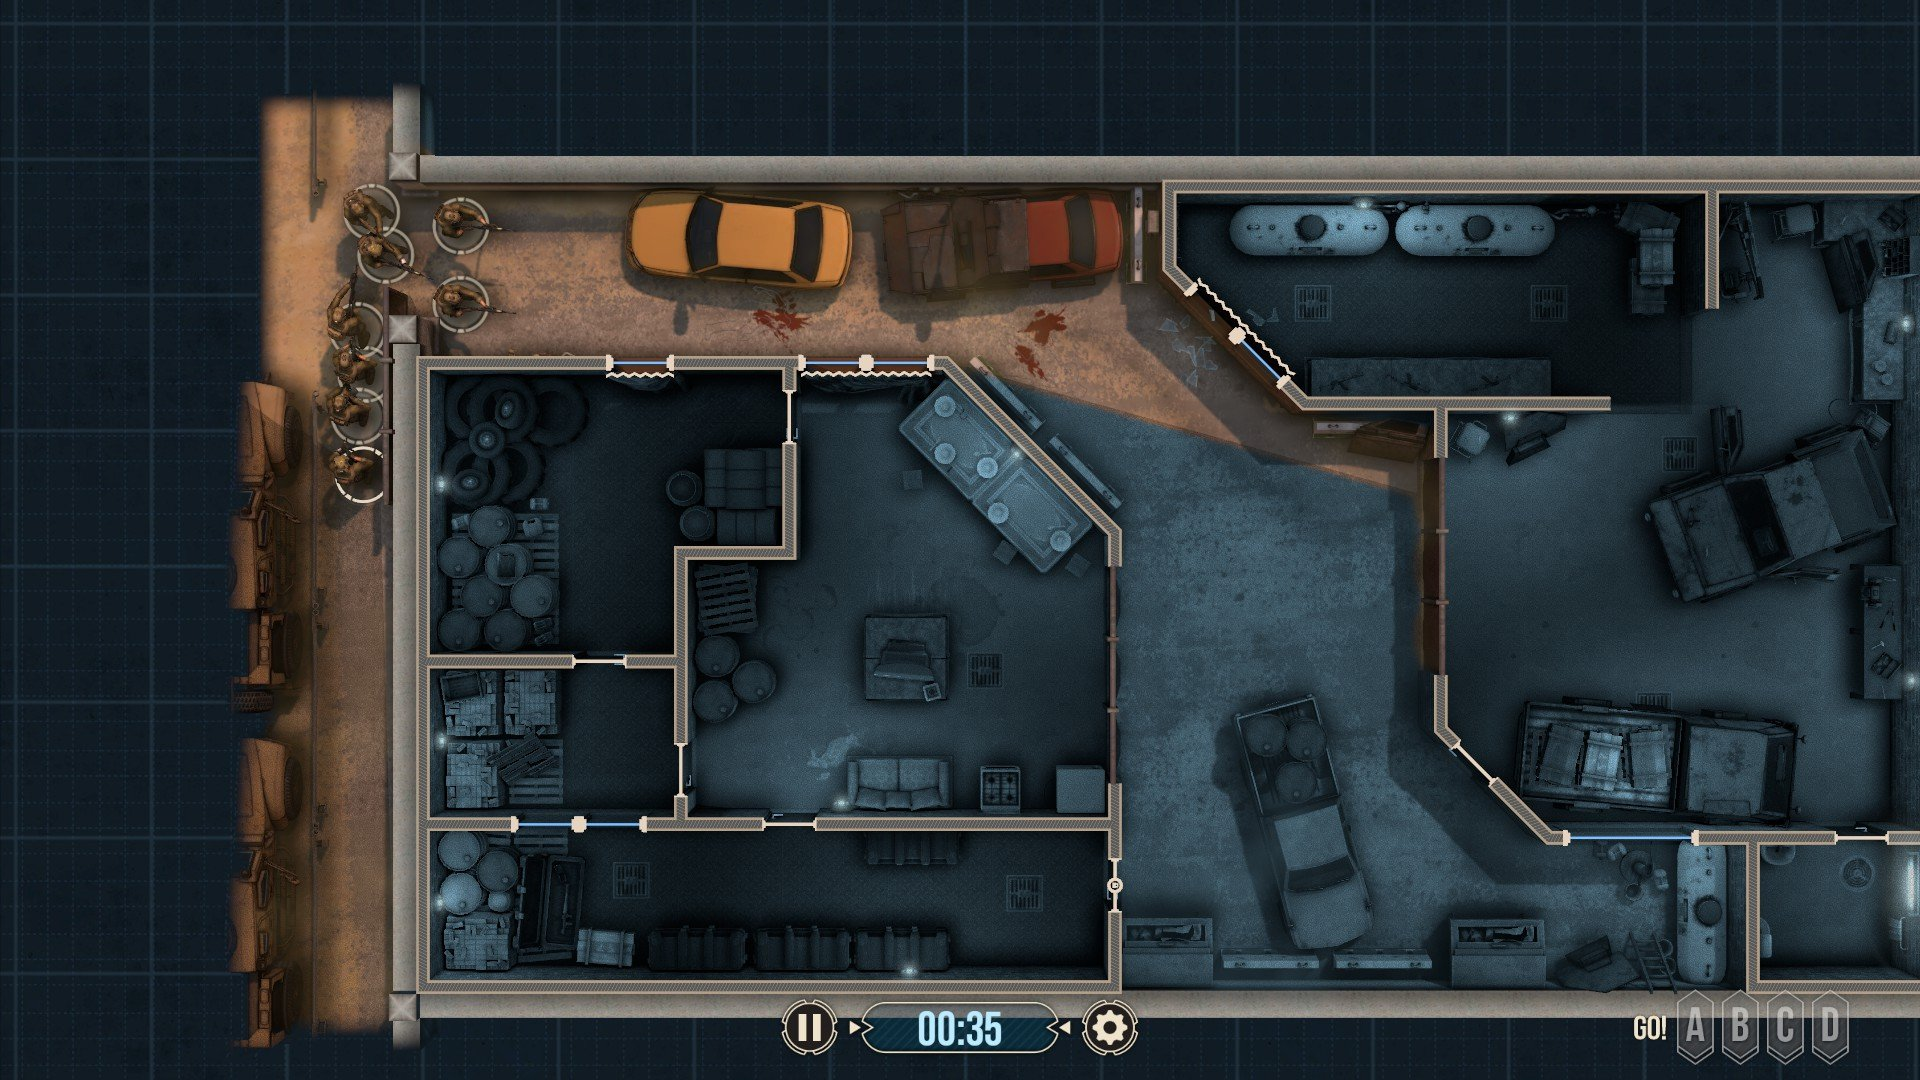 Door Kickers 2 - Every Entry Point Guide